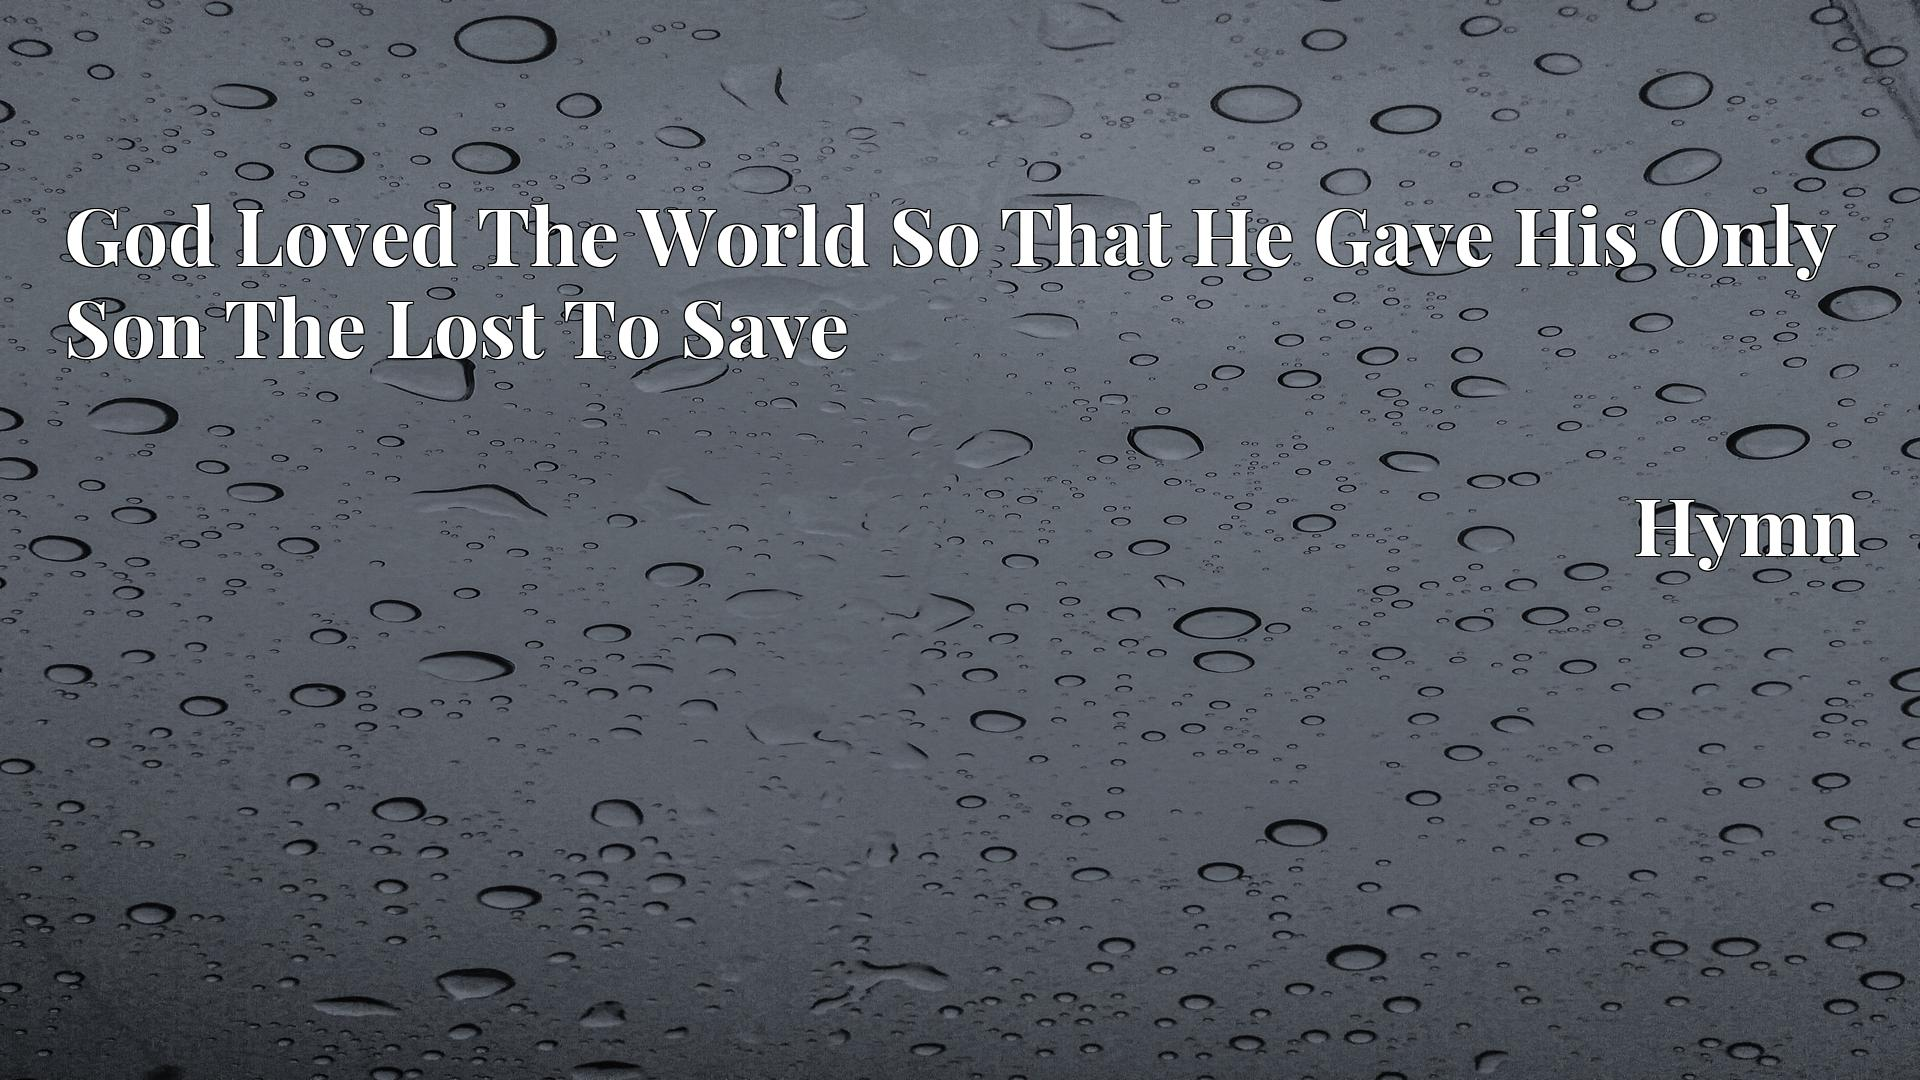 God Loved The World So That He Gave His Only Son The Lost To Save - Hymn